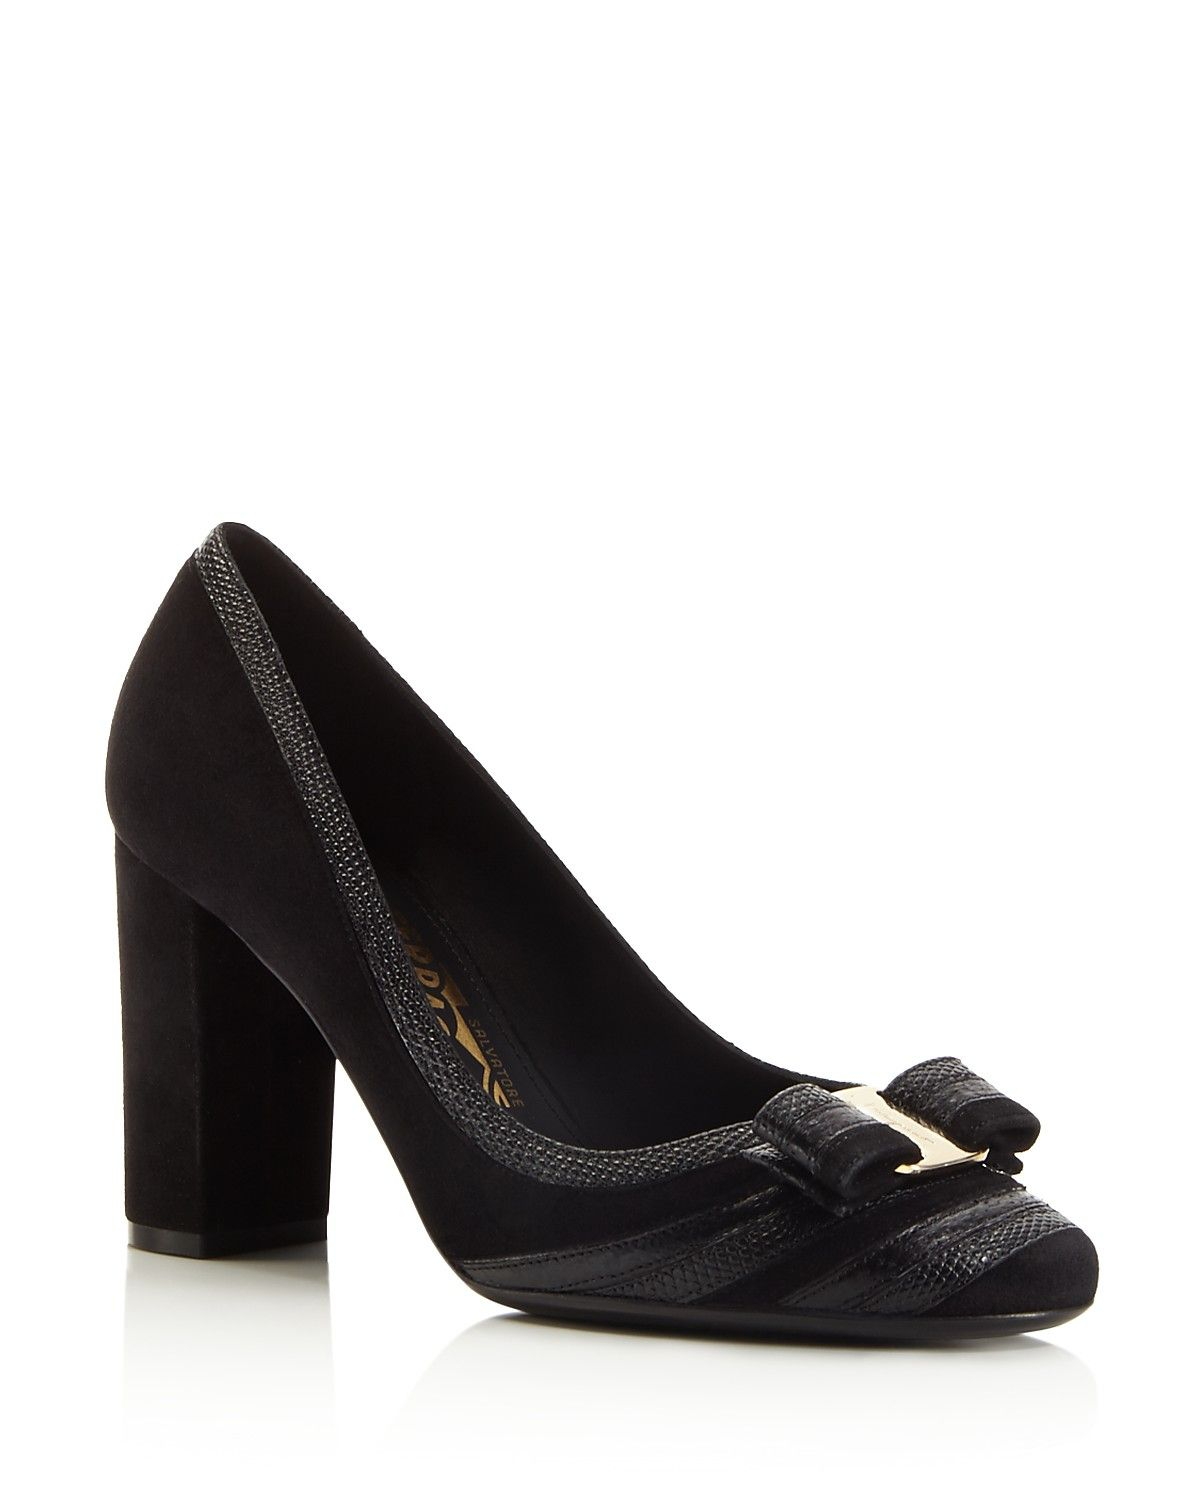 sale enjoy Salvatore Ferragamo Embossed Leather Bow Pumps shopping online clearance AI4JYcaCh